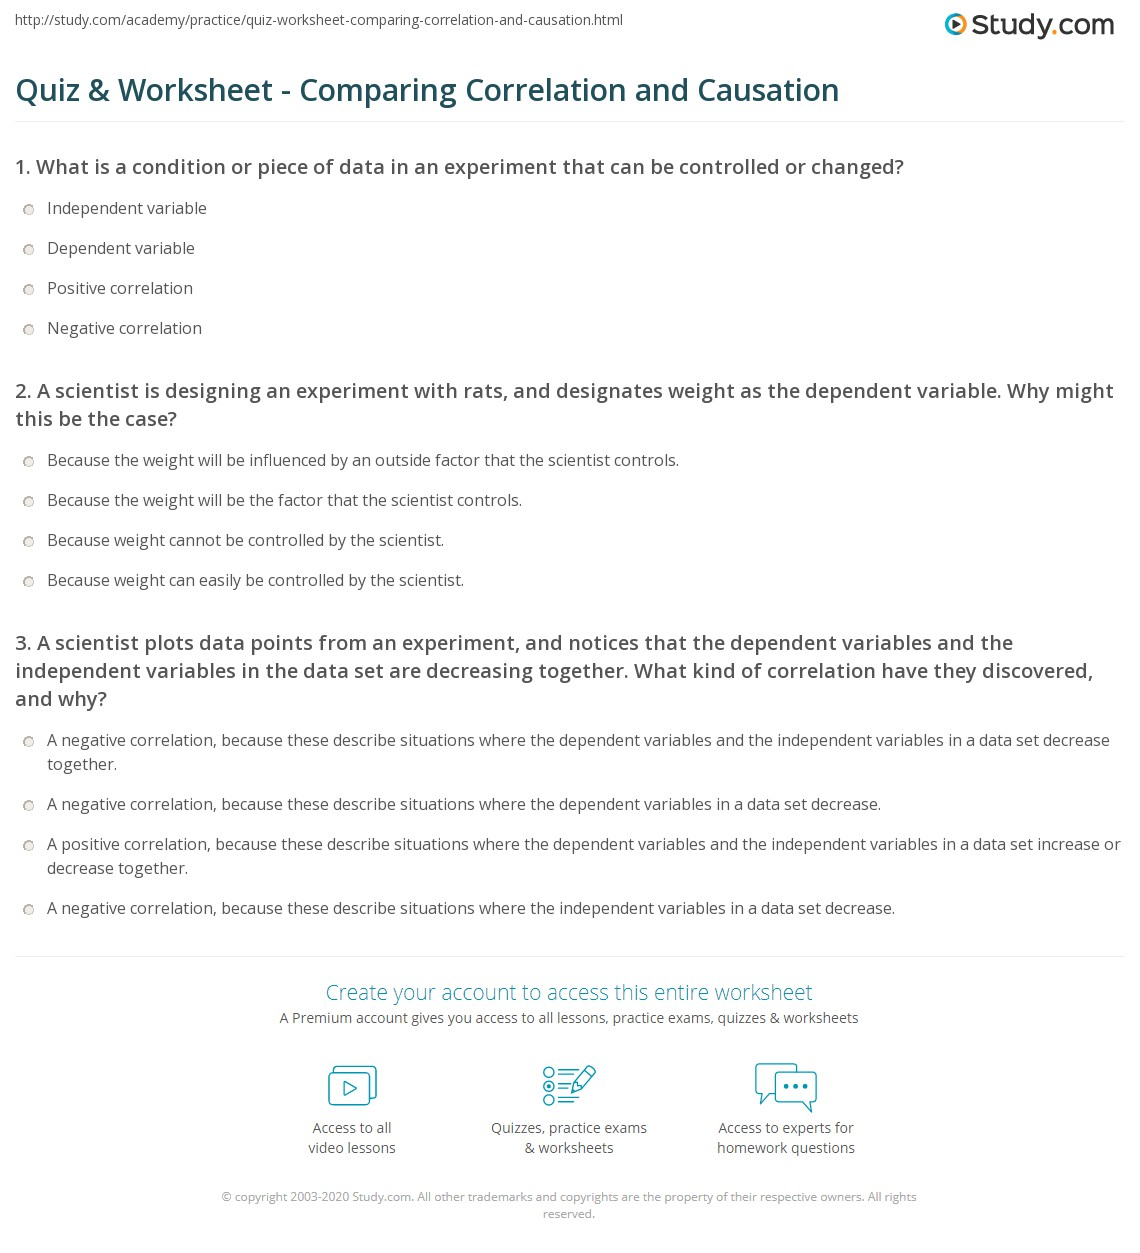 Aldiablosus  Unusual Quiz Amp Worksheet  Comparing Correlation And Causation  Studycom With Magnificent Print Correlation Vs Causation Differences Amp Definition Worksheet With Astounding Carry Over Addition Worksheets Also Pyramid Volume Worksheet In Addition Eating Healthy Worksheets And Sportsmanship Worksheet As Well As Nd Grade Compound Words Worksheet Additionally Figurative Language Quiz Worksheet From Studycom With Aldiablosus  Magnificent Quiz Amp Worksheet  Comparing Correlation And Causation  Studycom With Astounding Print Correlation Vs Causation Differences Amp Definition Worksheet And Unusual Carry Over Addition Worksheets Also Pyramid Volume Worksheet In Addition Eating Healthy Worksheets From Studycom